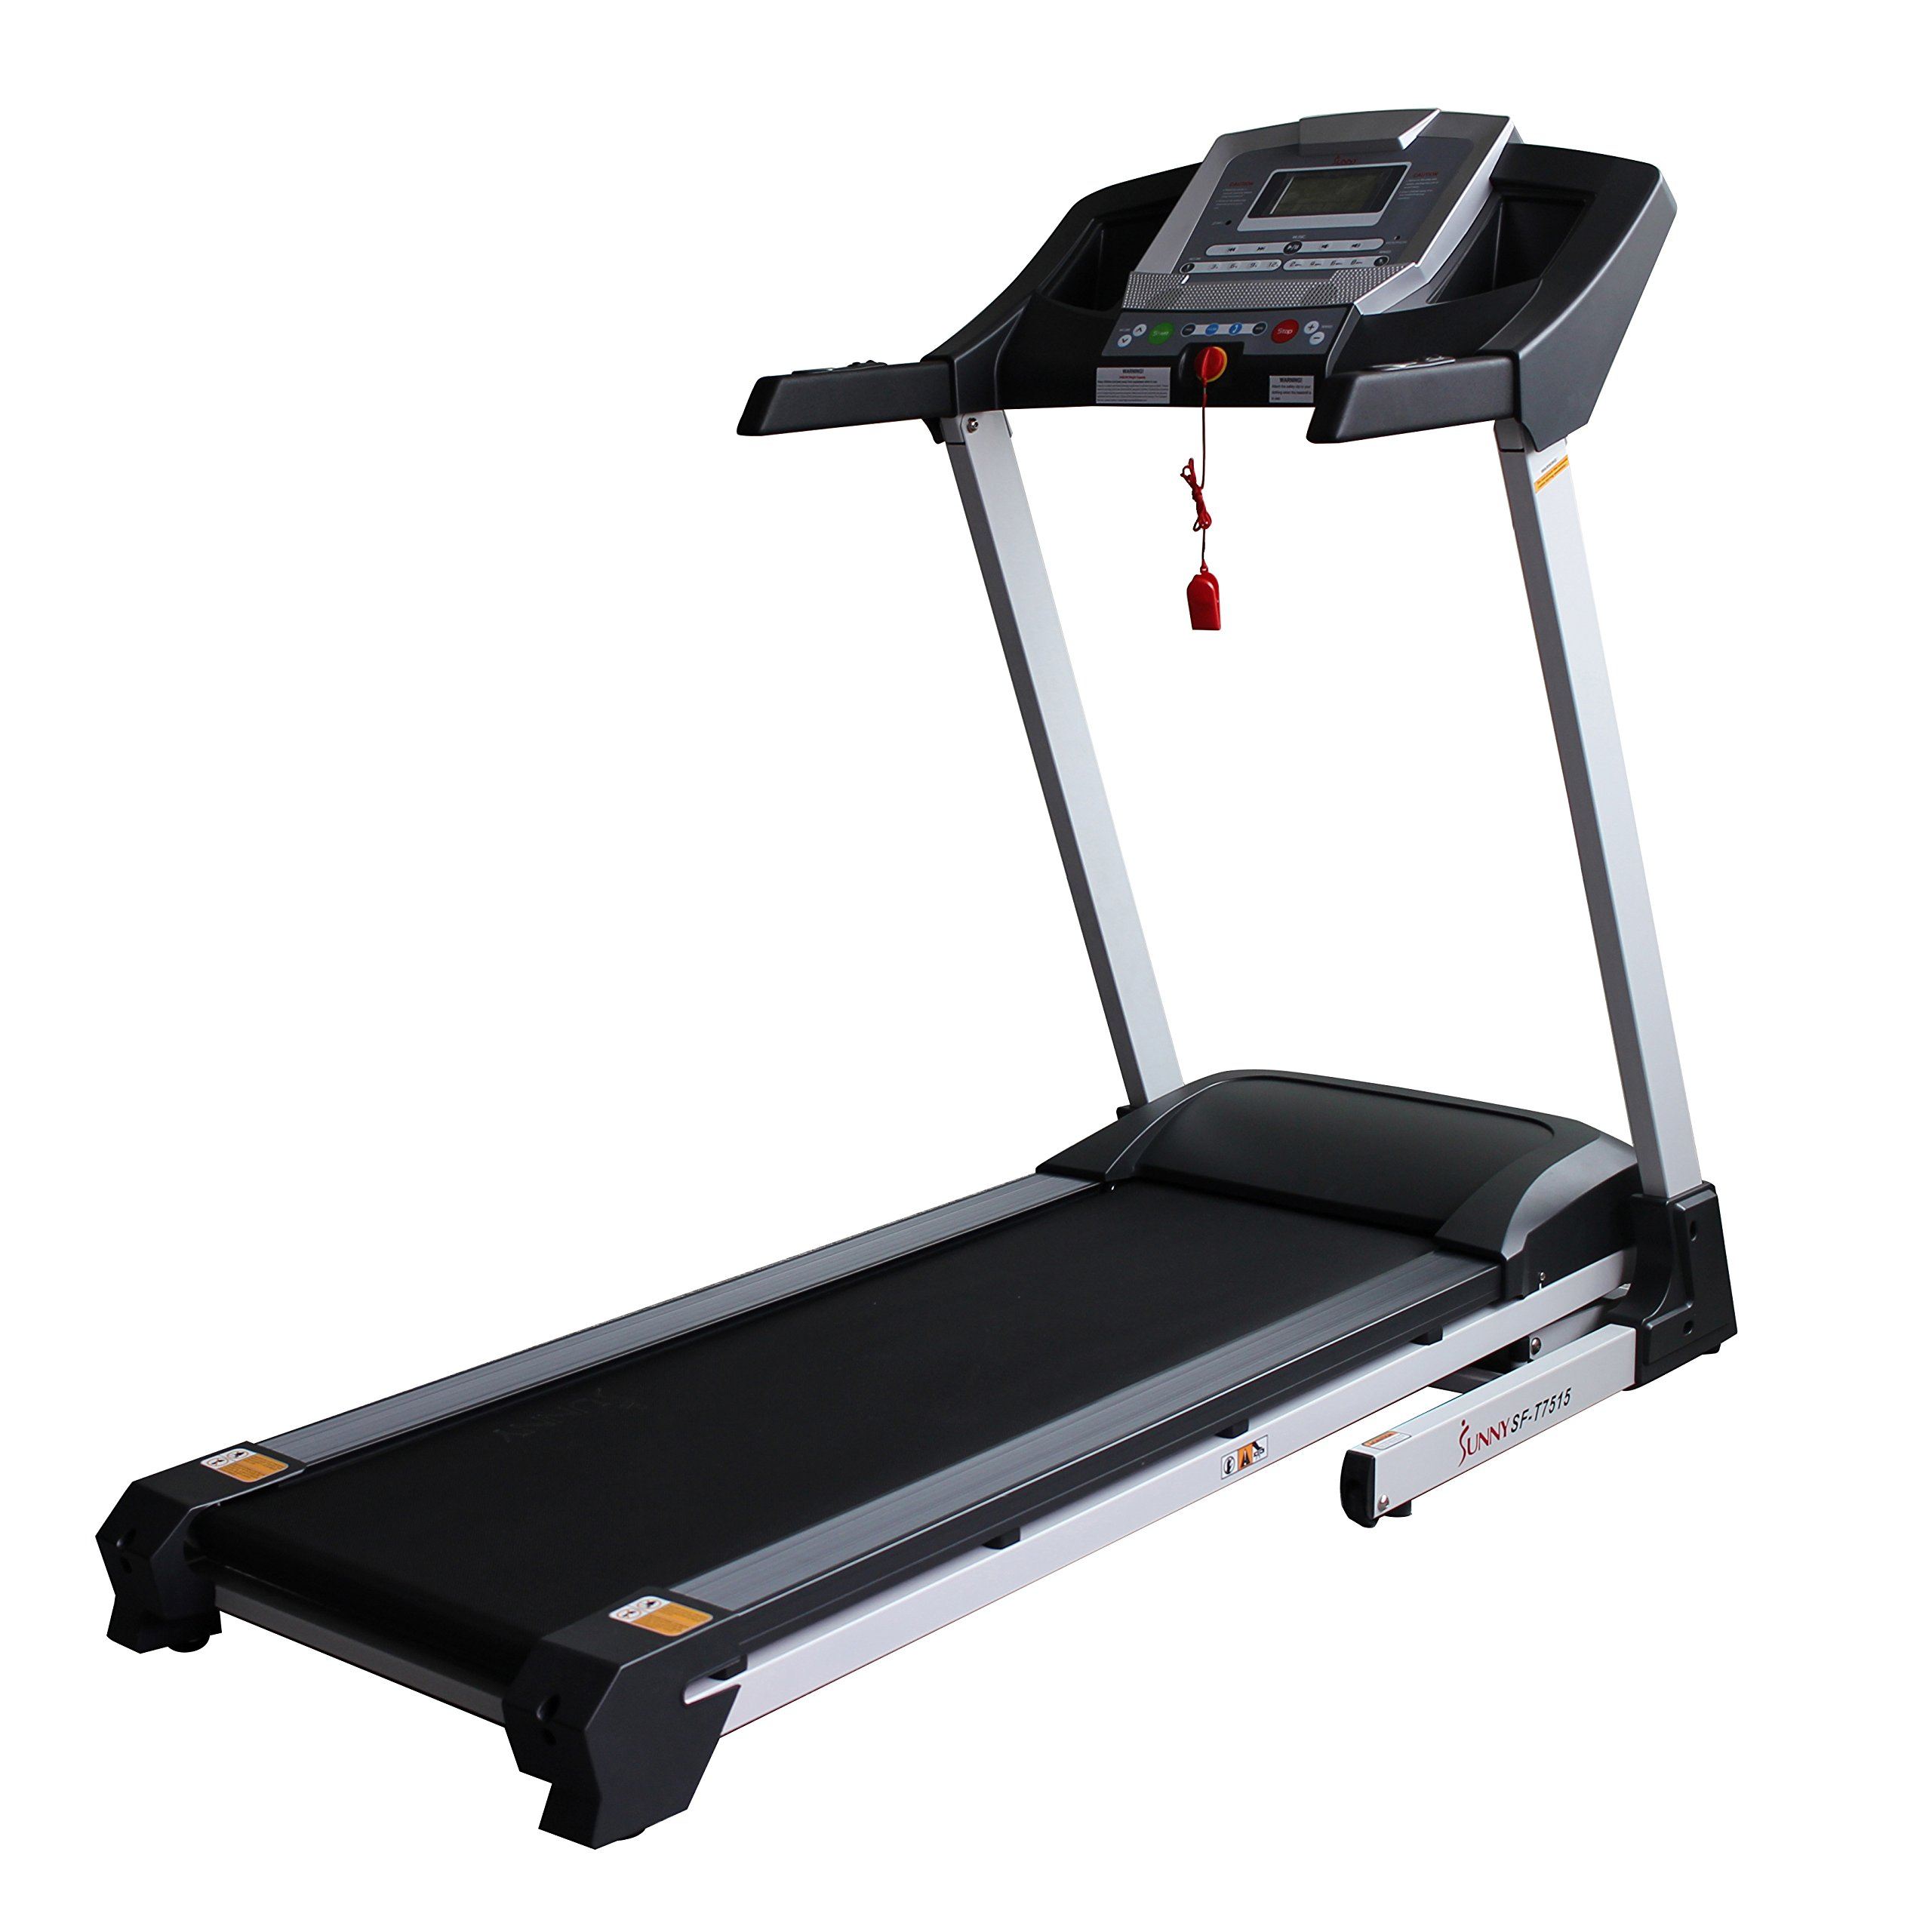 Sunny Health & Fitness SF-T7515 Smart Treadmill with Auto Incline, Bluetooth and BMI Calculator by Sunny Health & Fitness (Image #2)